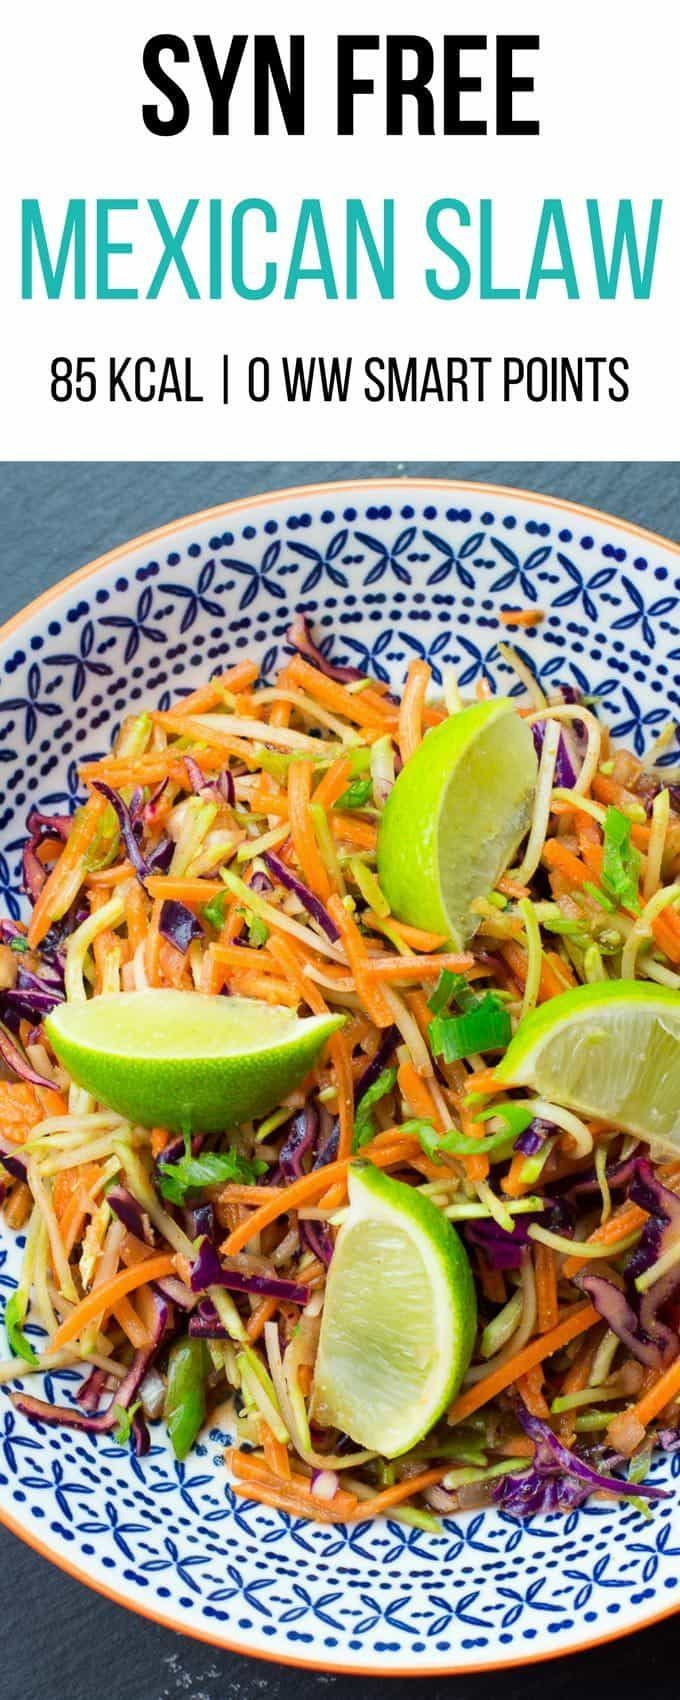 Syn free mexican slaw slimming world 0 weight watchers smart syn free mexican slaw slimming world 0 weight watchers smart points 85kcal mexican dinner partymexican dinnersmexican food forumfinder Choice Image